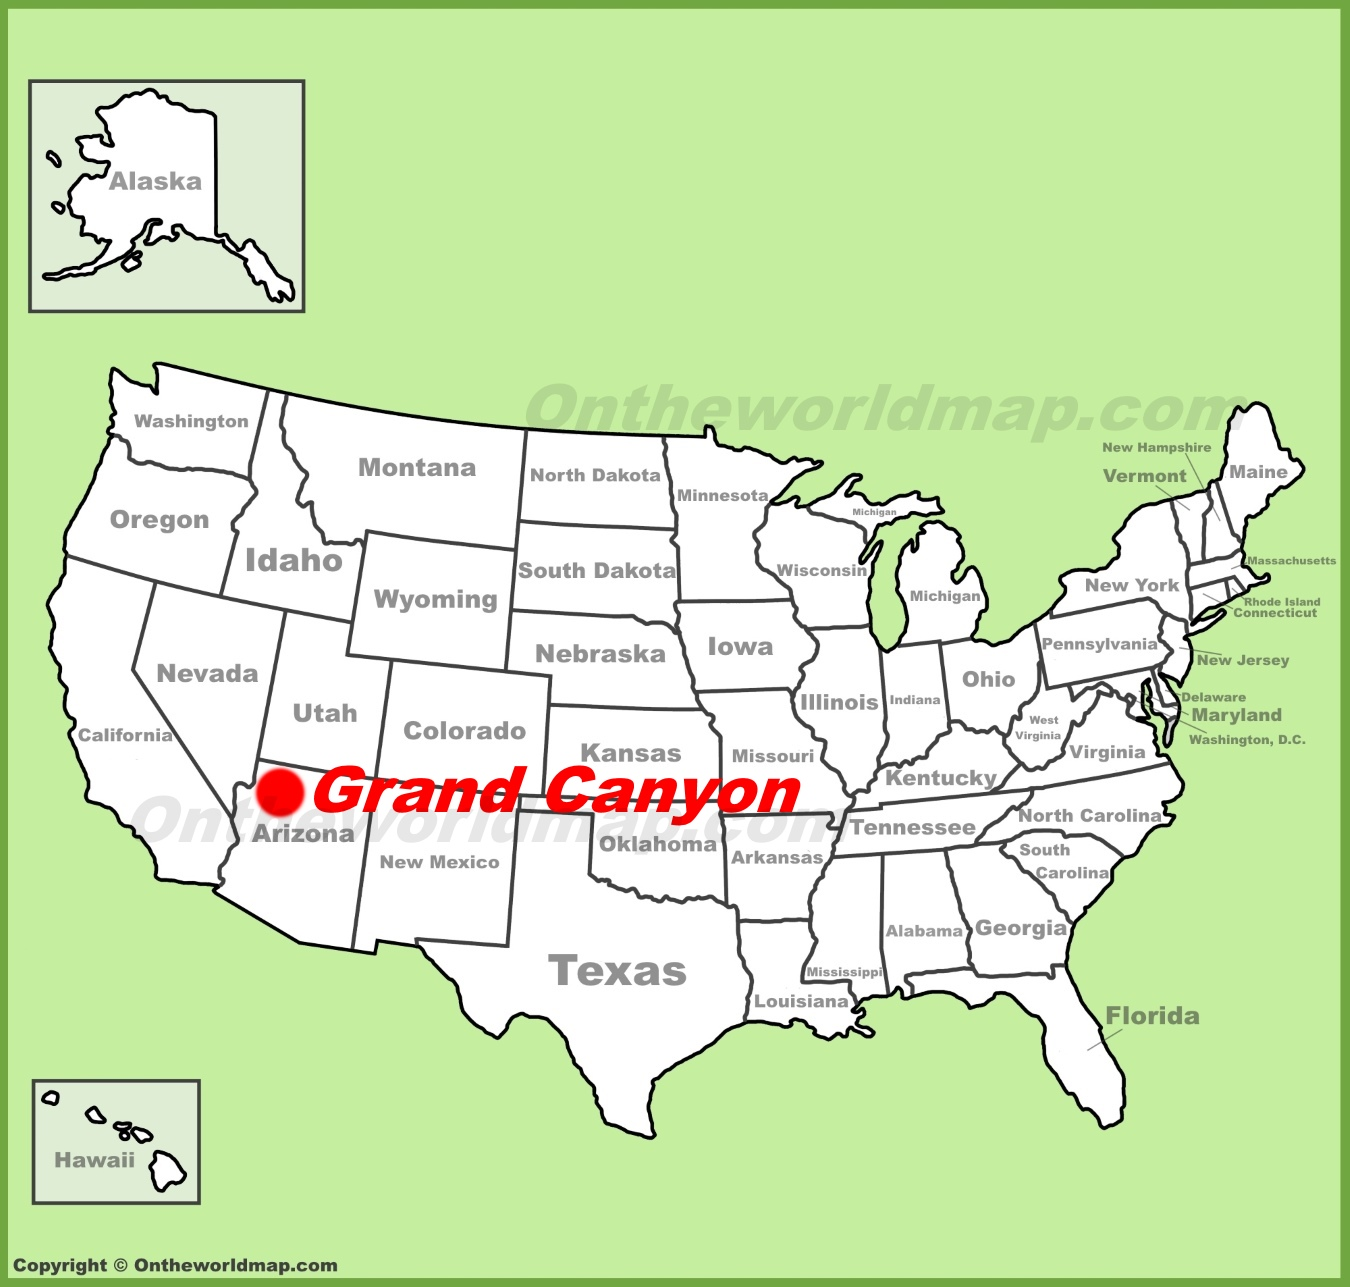 Grand Canyon Map Us Grand Canyon Maps | USA | Maps of Grand Canyon National Park